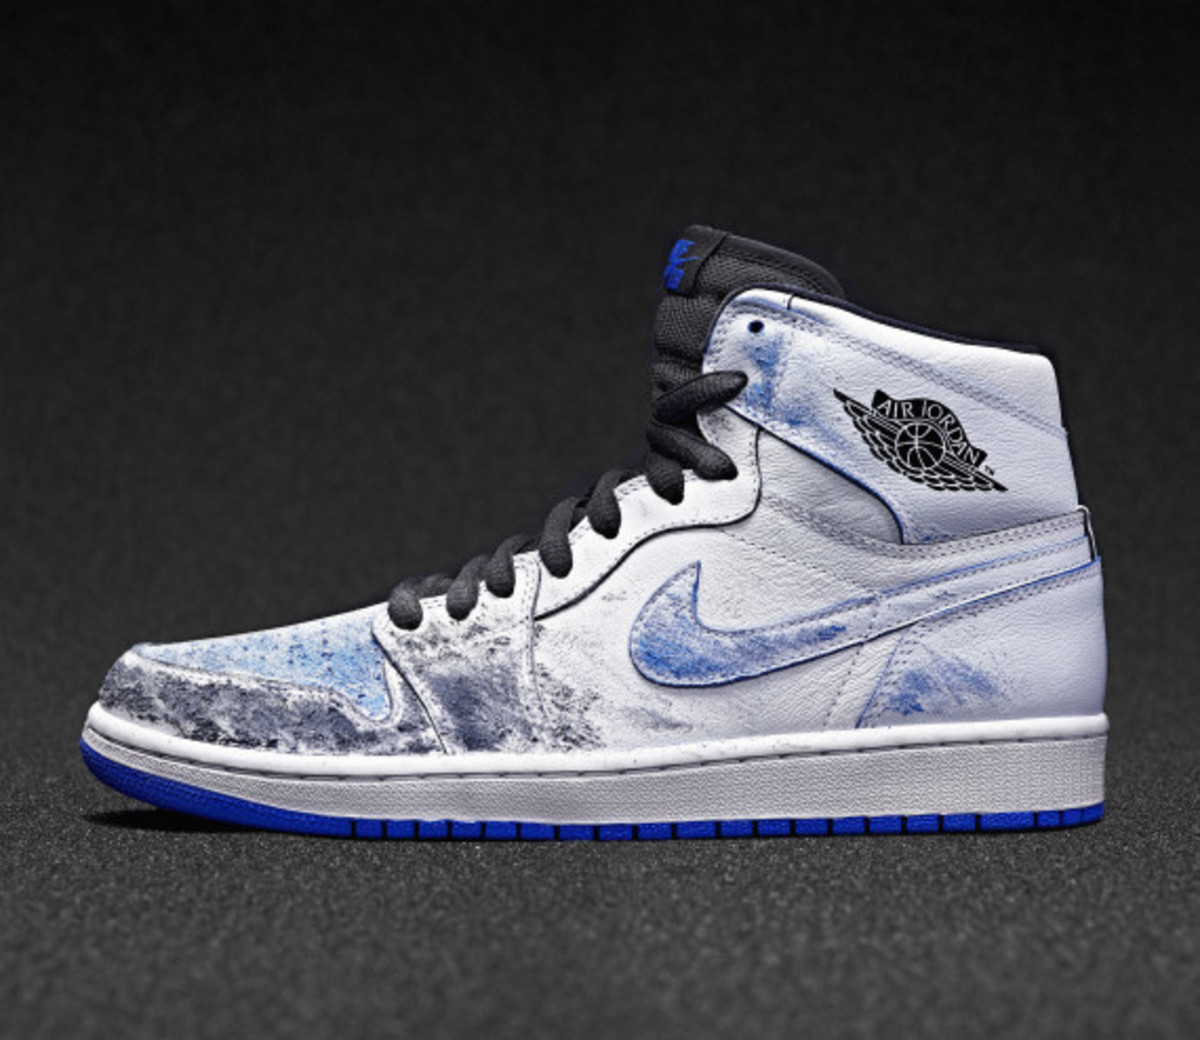 Nike SB x Air Jordan 1 by Lance Mountain - Officially Unveiled - 8